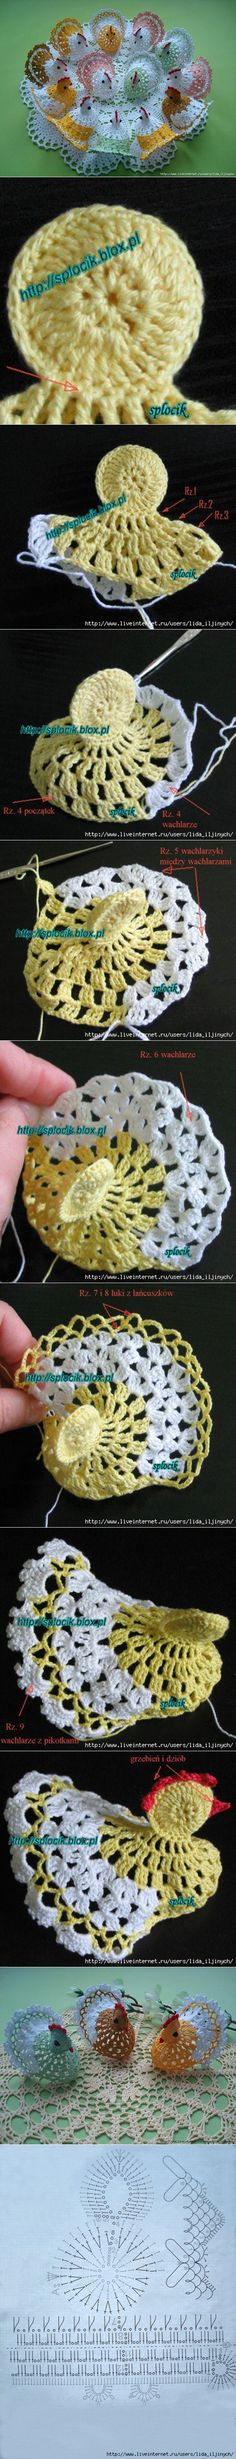 DIY Cute Crochet Chick Decor | www.FabArtDIY.com LIKE Us on Facebook ==>…